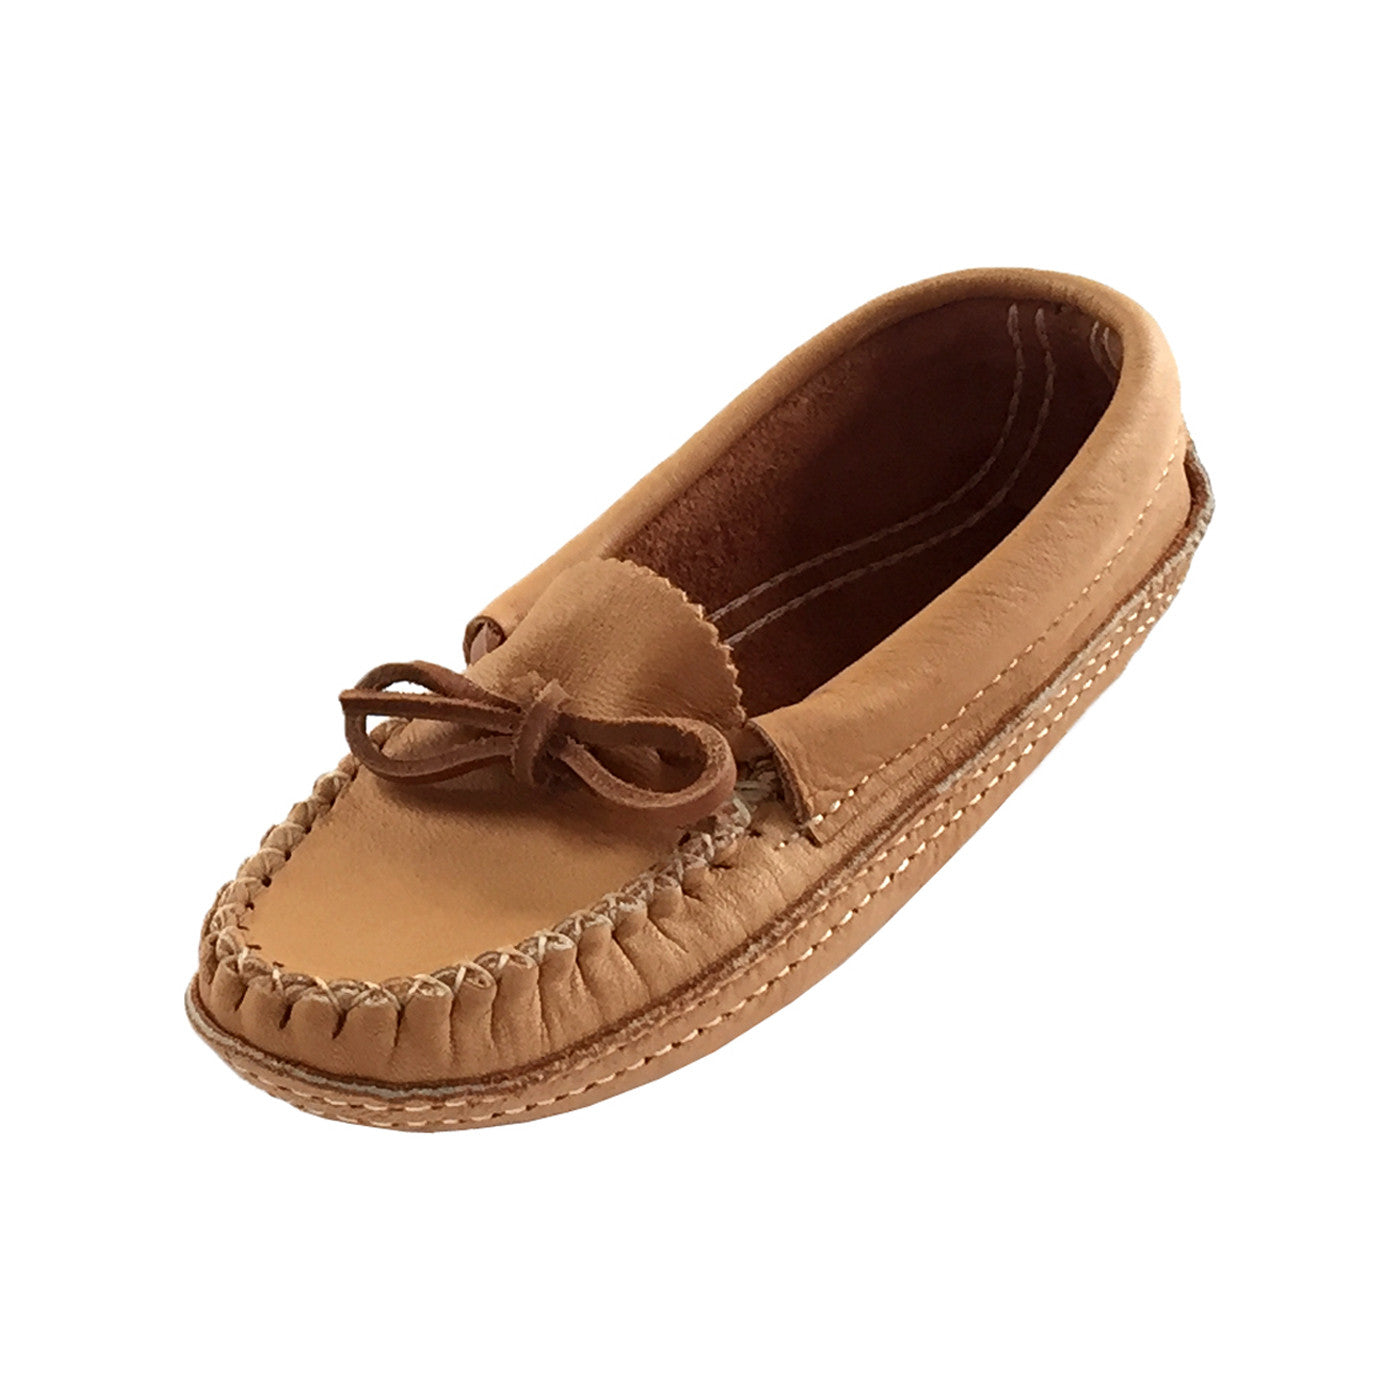 moccasin girls Hand sewn stitching to maintain a level of craftsmanship that makes moccis the finest moccasin available.